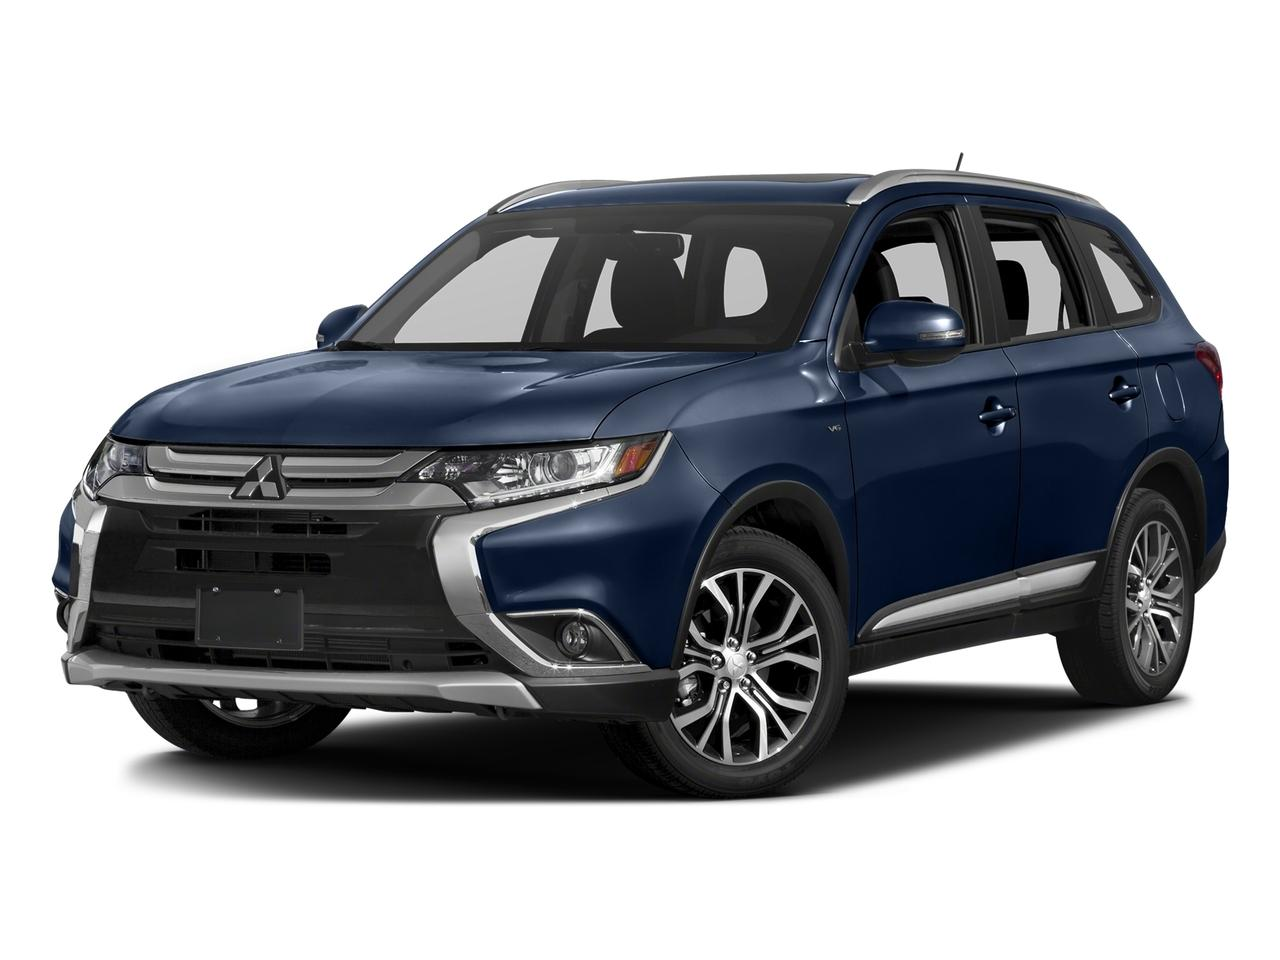 2016 Mitsubishi Outlander Vehicle Photo in Temple, TX 76502